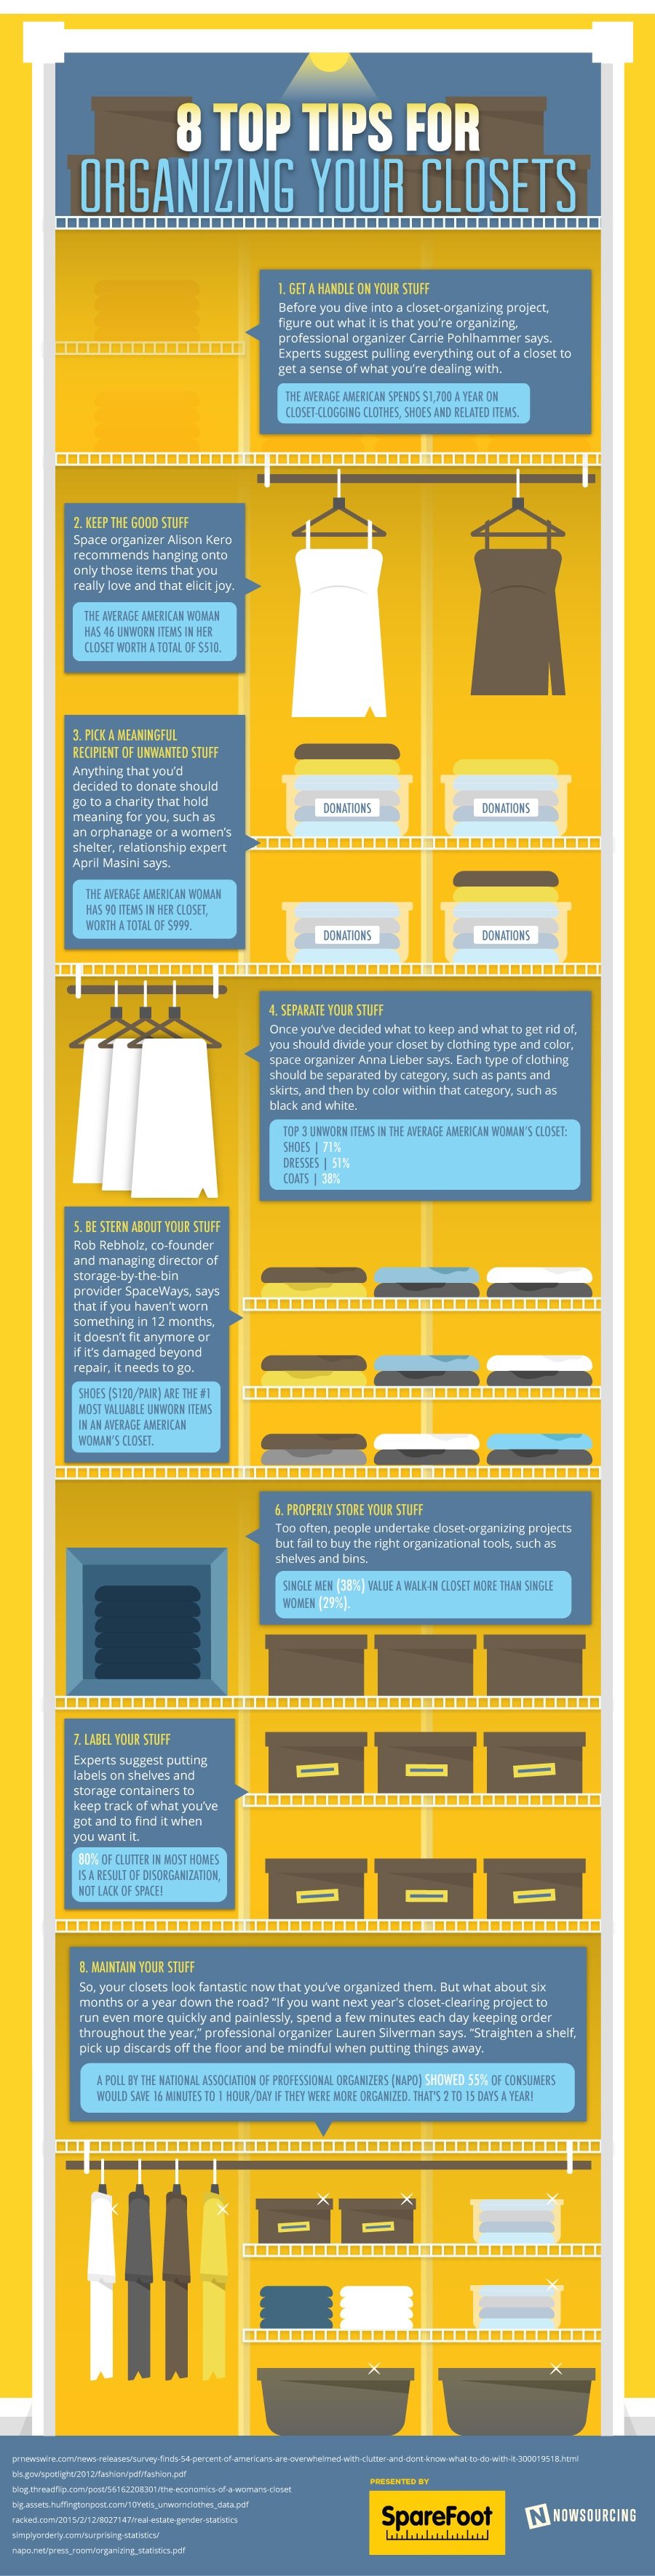 cost-cluttered-closet-2015-infographic